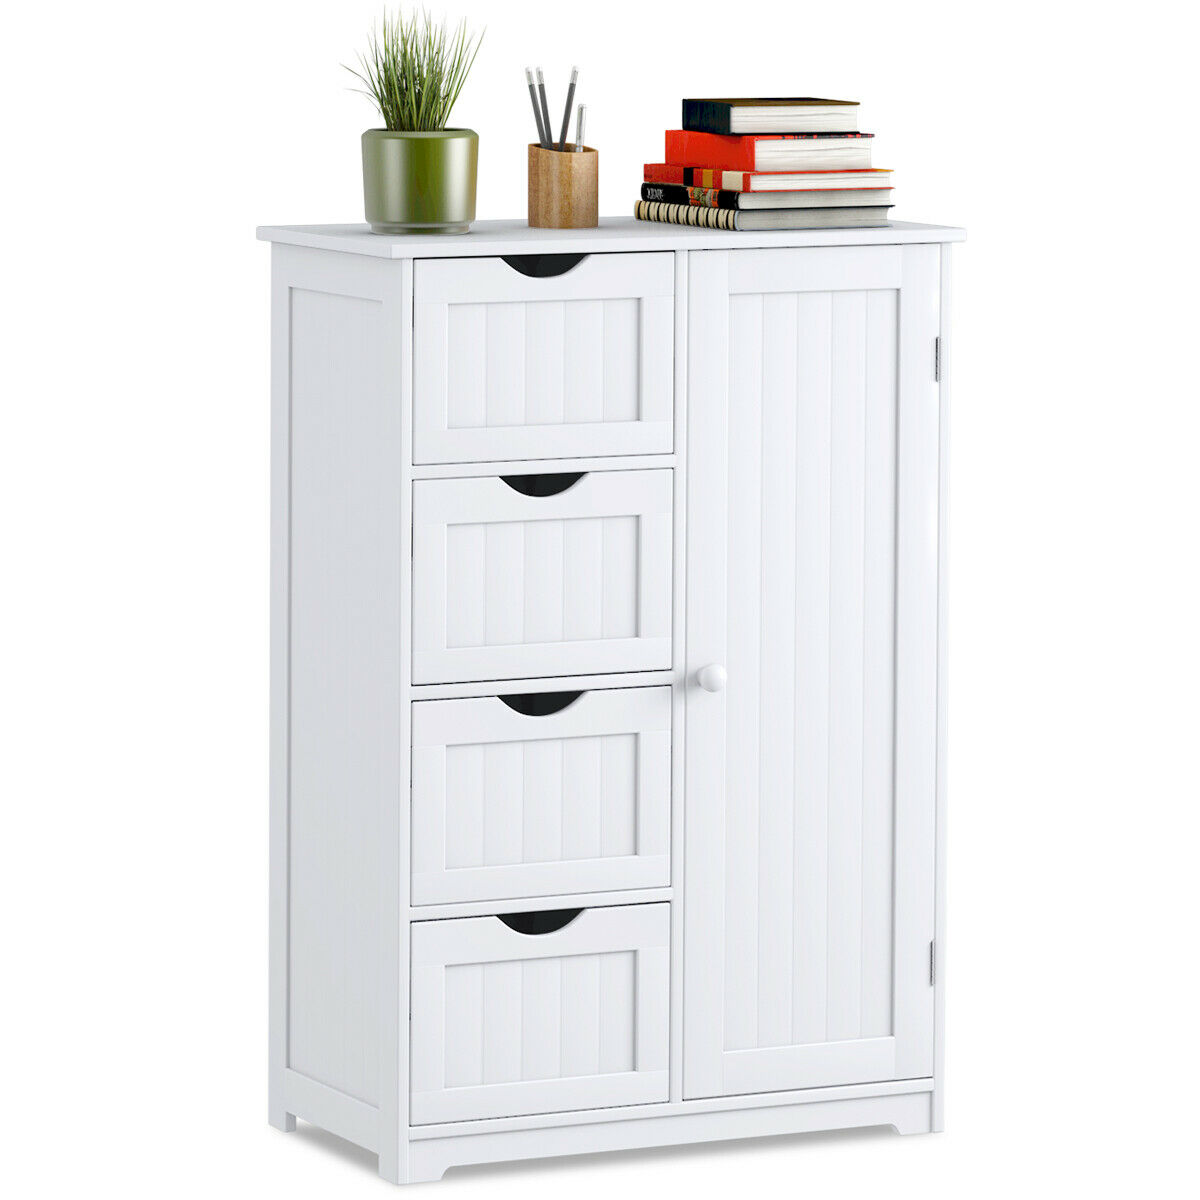 Costway Wooden 4 Drawer Bathroom Cabinet Storage Cupboard 2 Shelves Free Standing White Walmart Canada